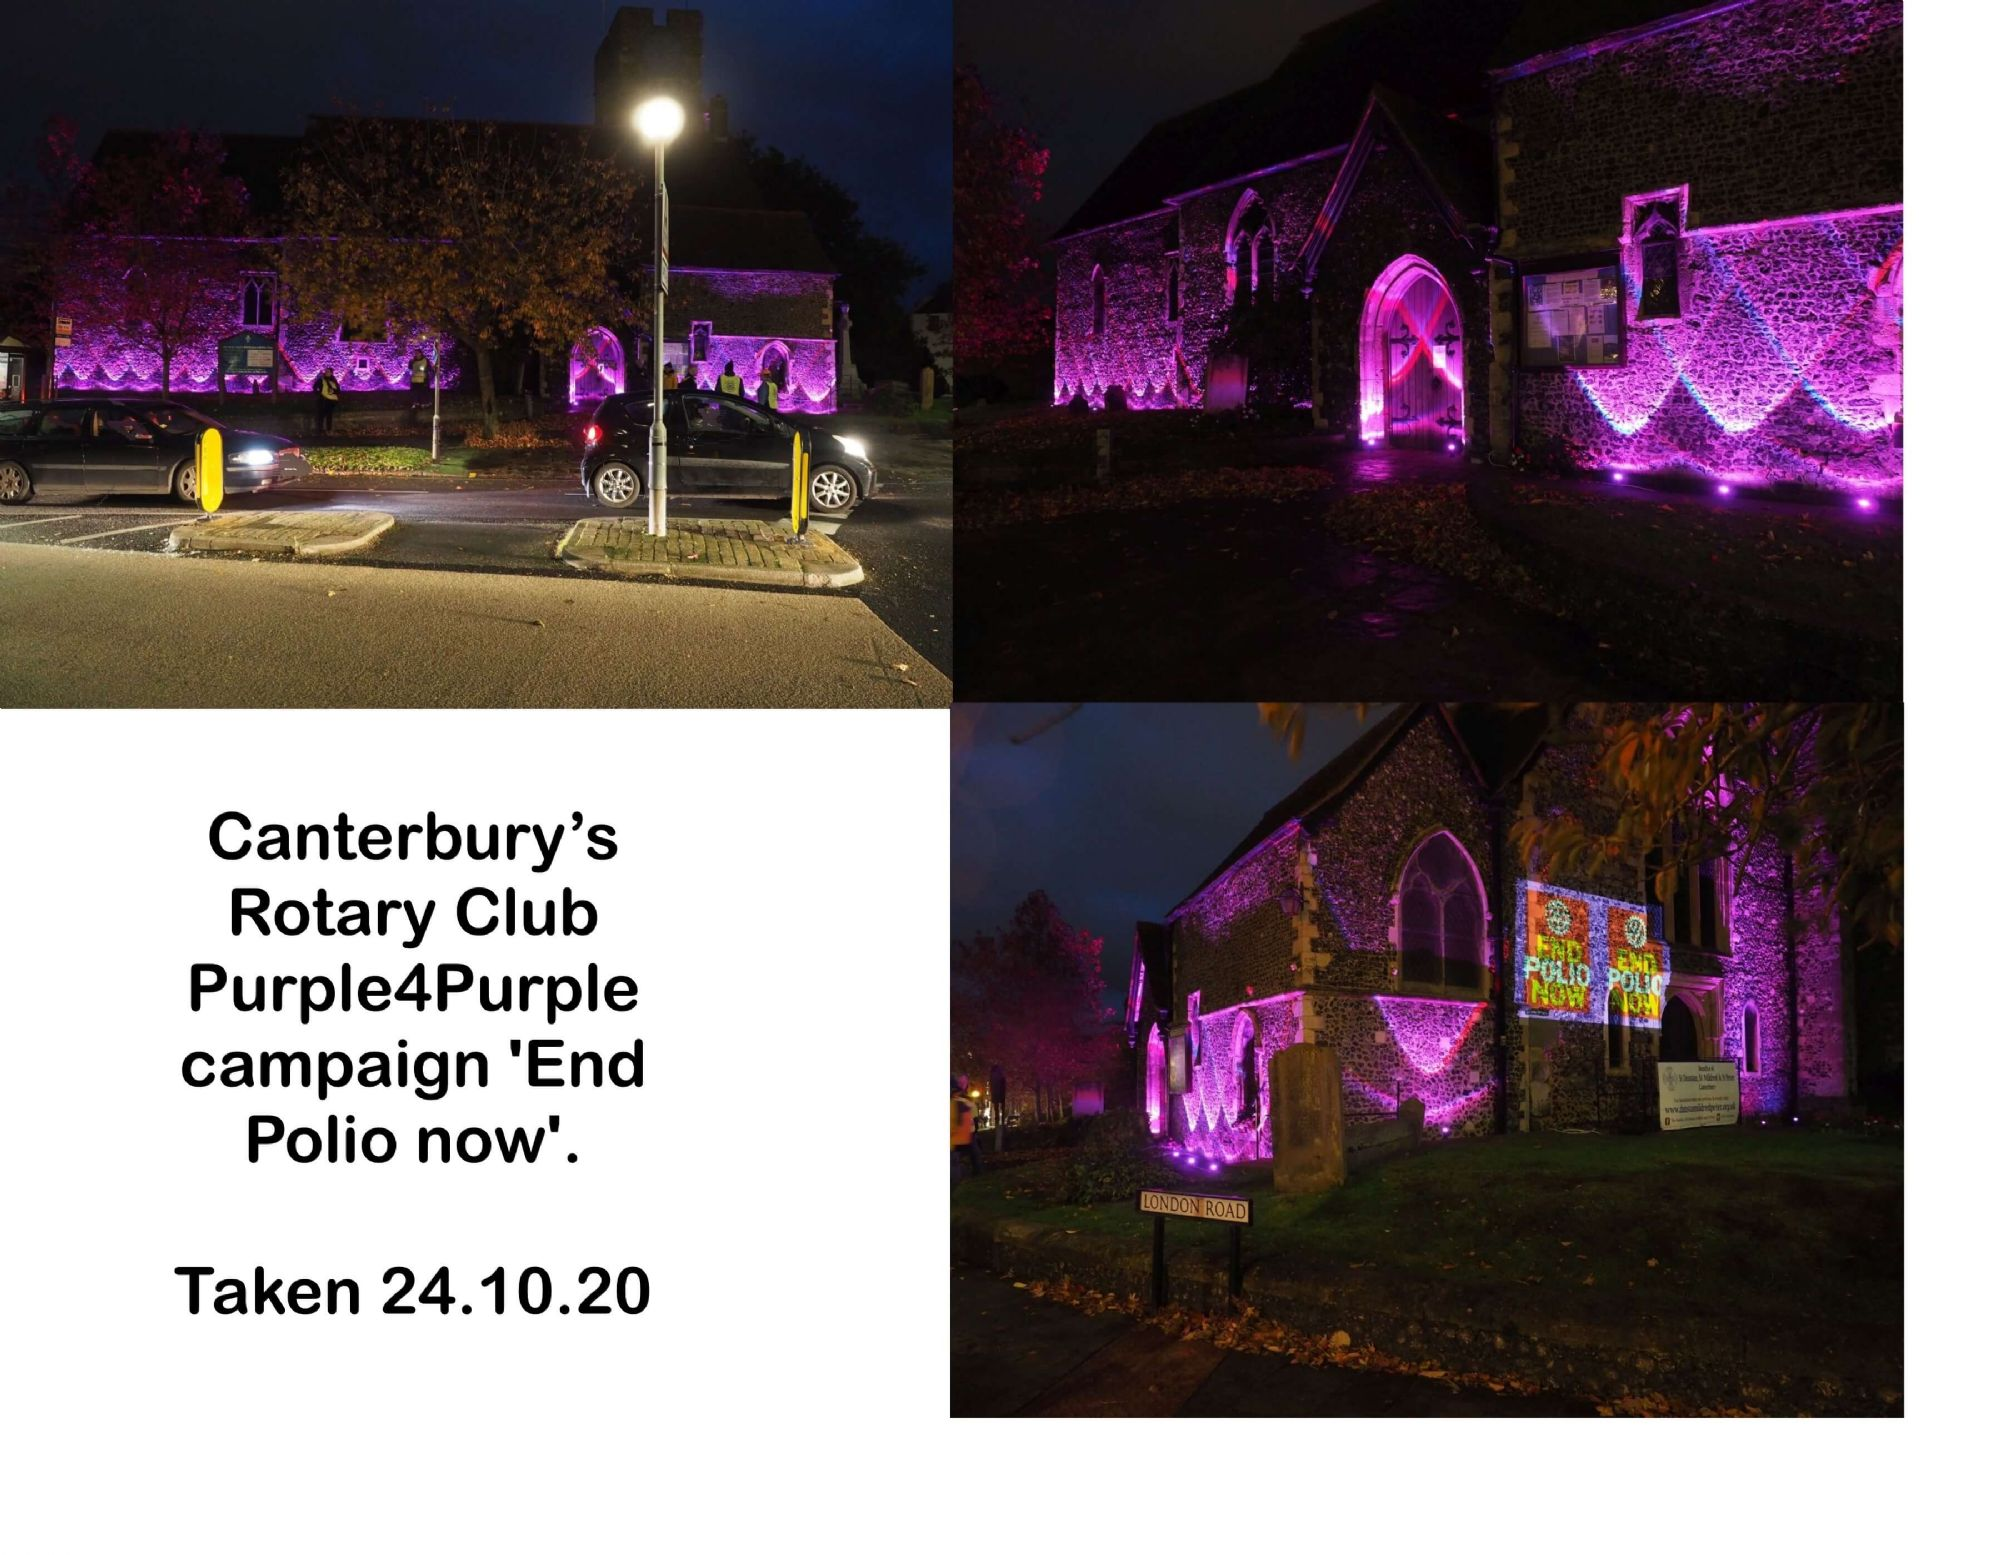 Canterbury's Rotary Club Purple4Purple campaign 'End Polio now'